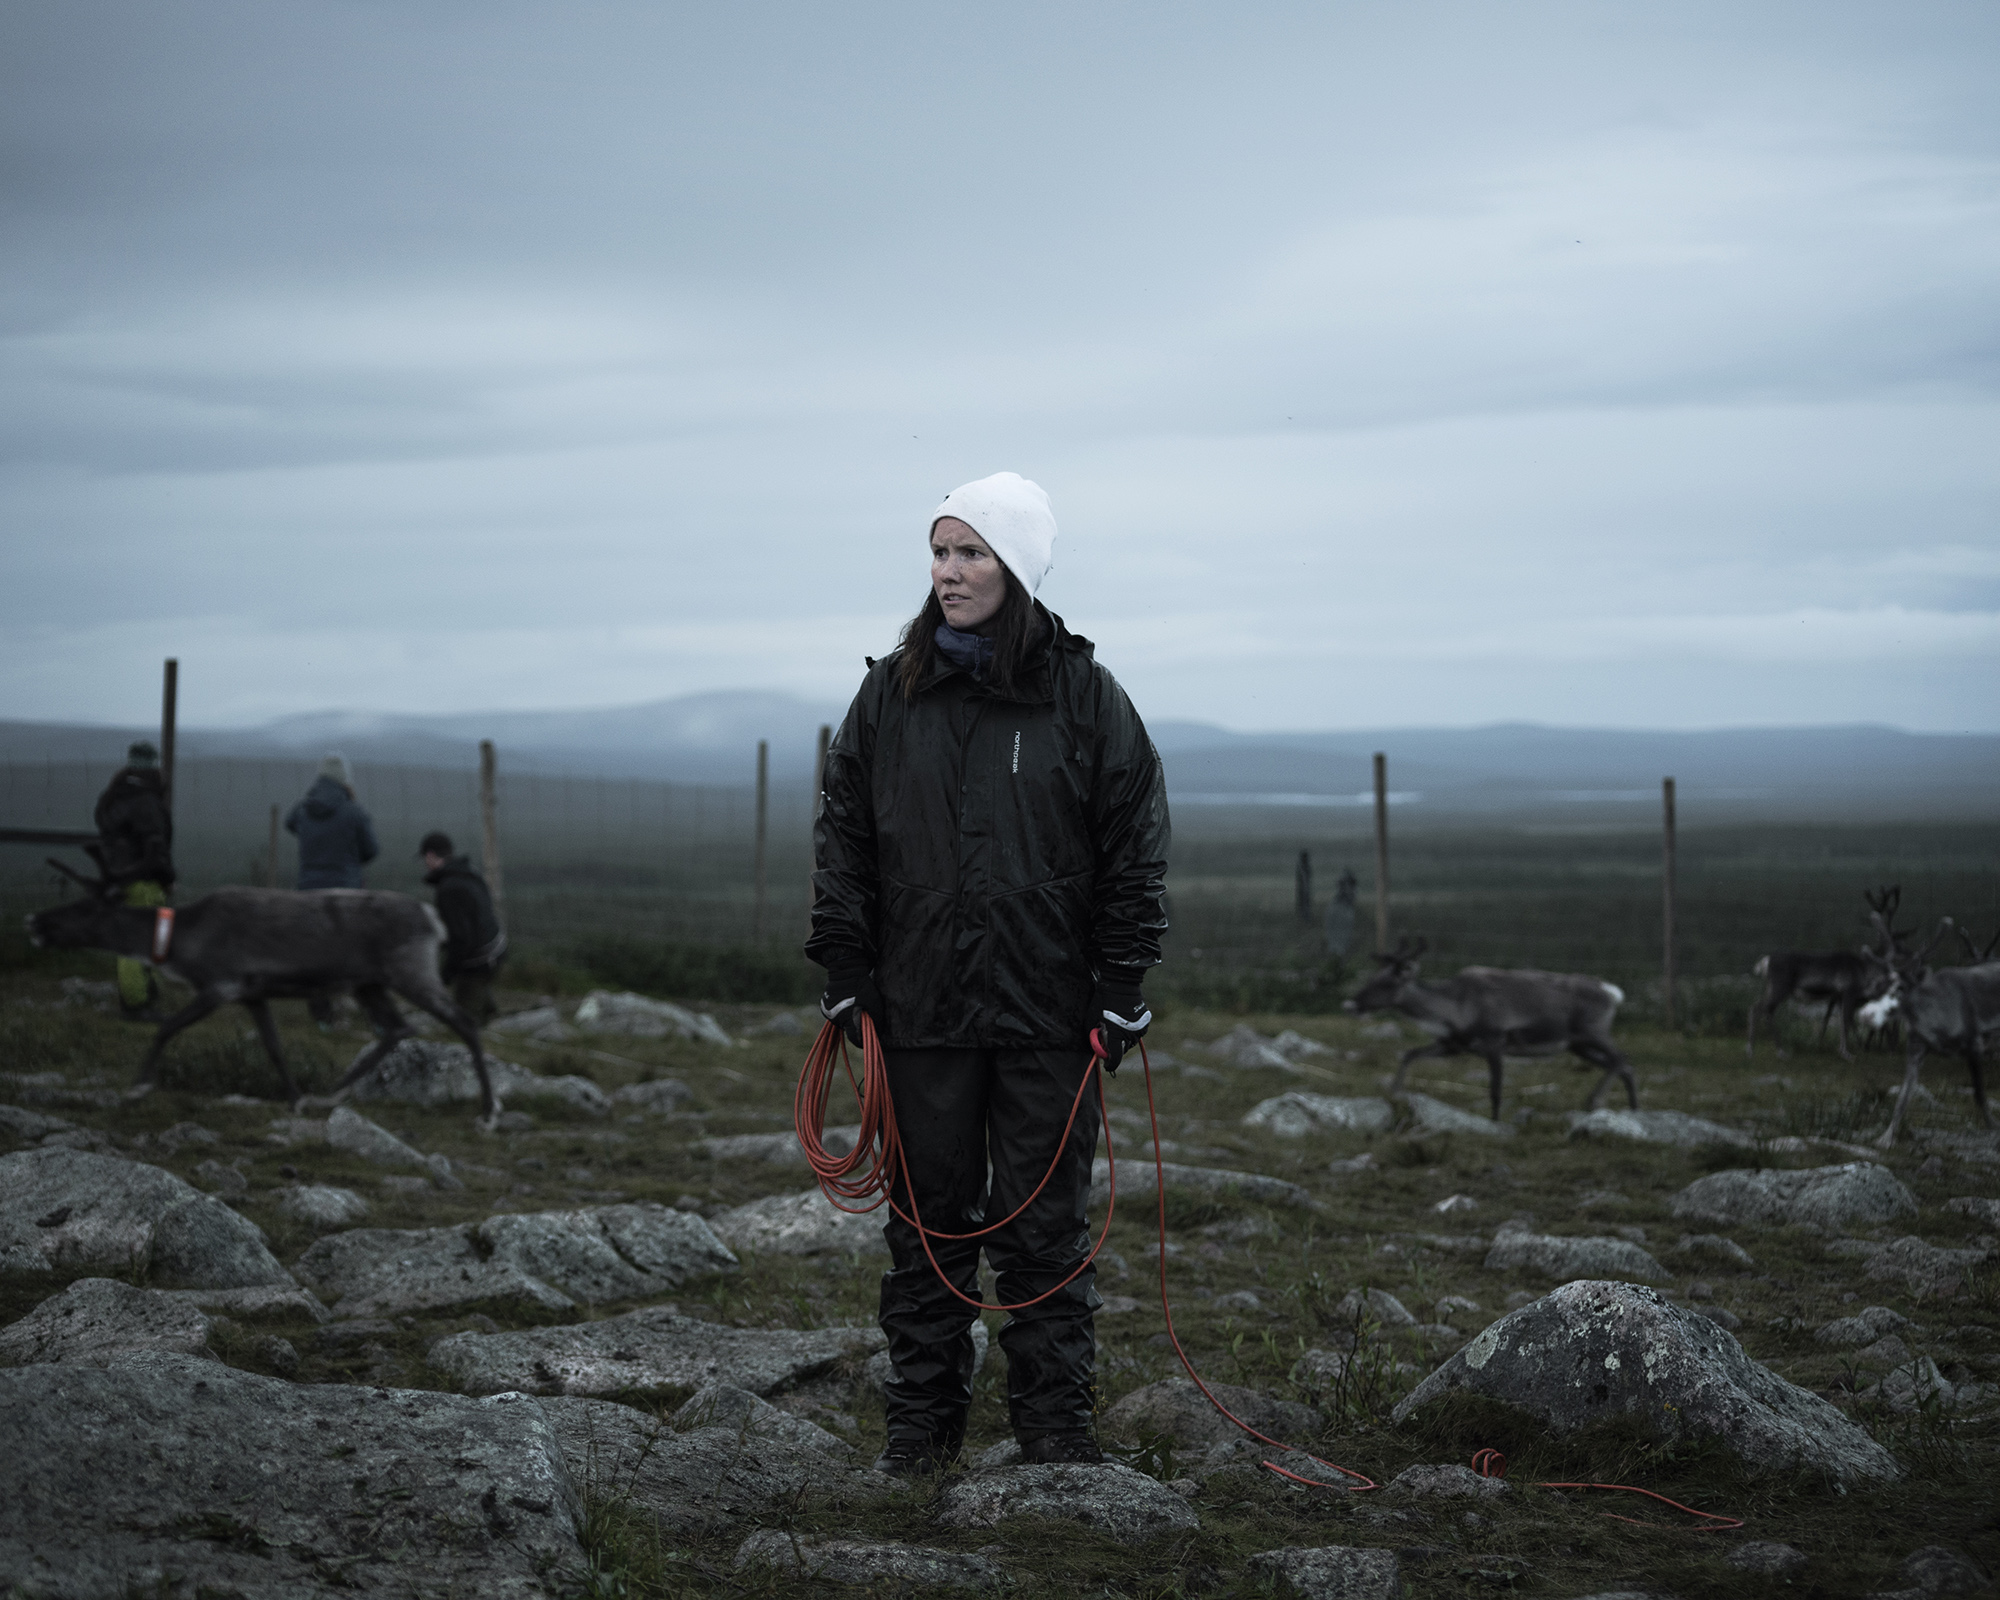 Beatrice Fløystad, inside the reindeer corral. Beatrice works to maintain the Sami language and culture, and also herds reindeer with her partner Simon Issát.  A campaign of forced assimilation, from the 1880s to 1960s, resulted in the loss of many Sami languages and dialects. (Camilla Andersen/GroundTruth)